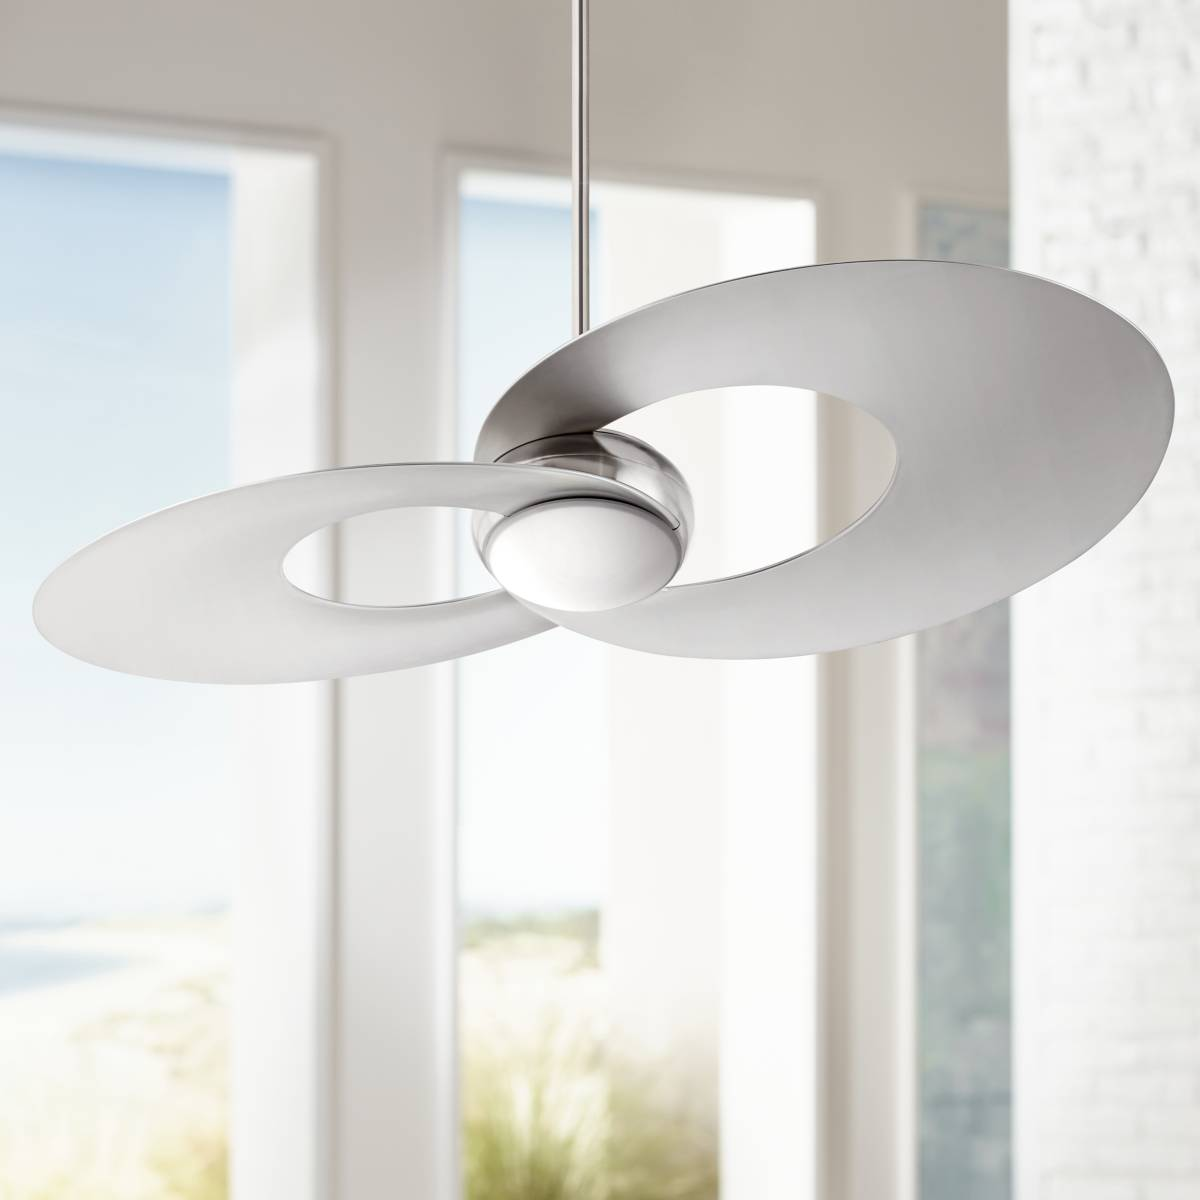 Lamp Plus Stores: Contemporary Ceiling Fans - Fresh Modern Looks